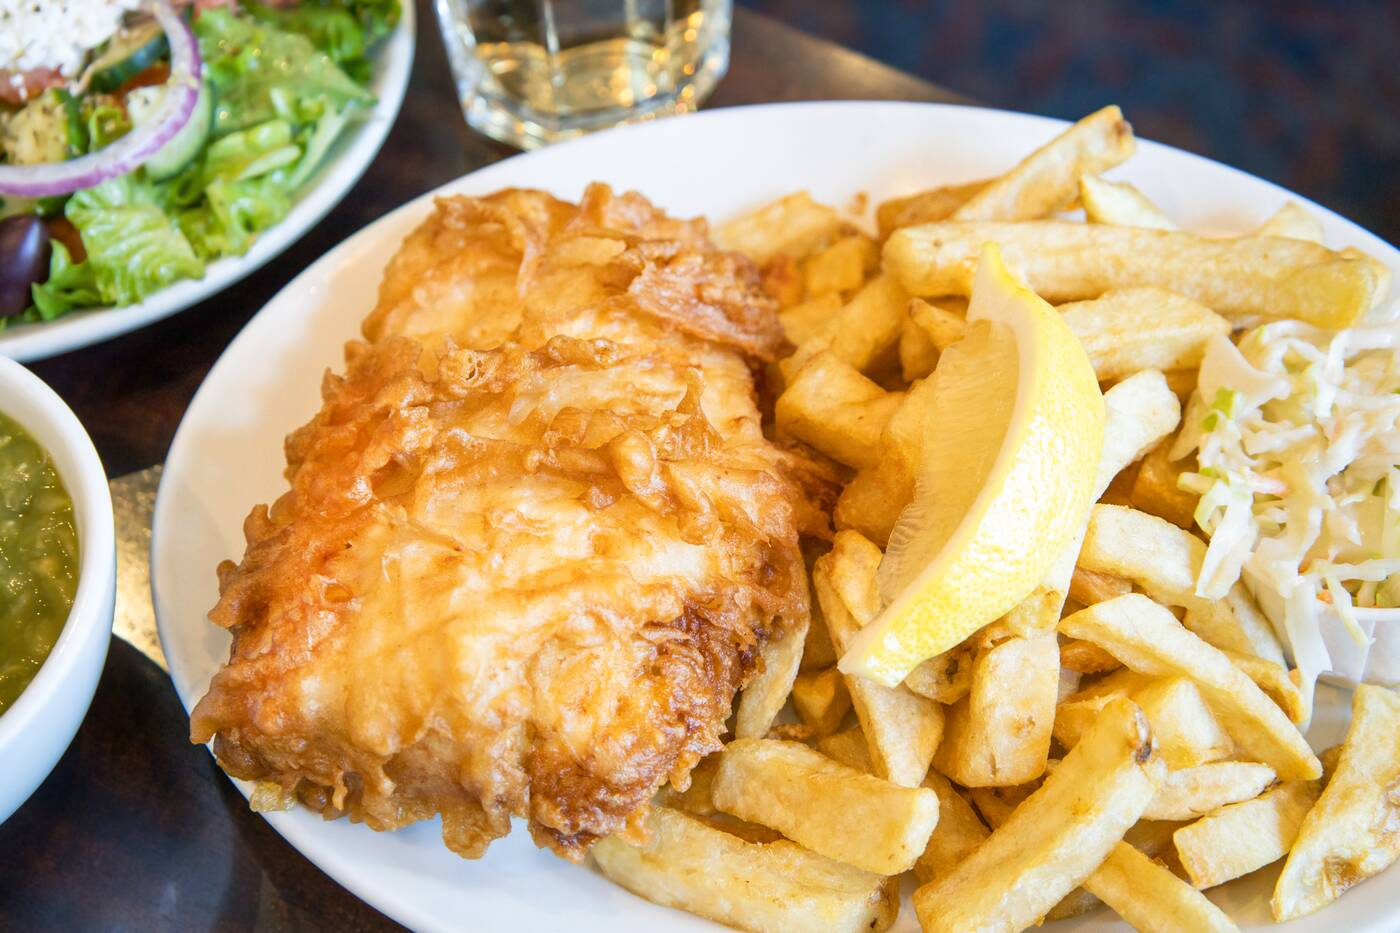 olde yorke fish and chips